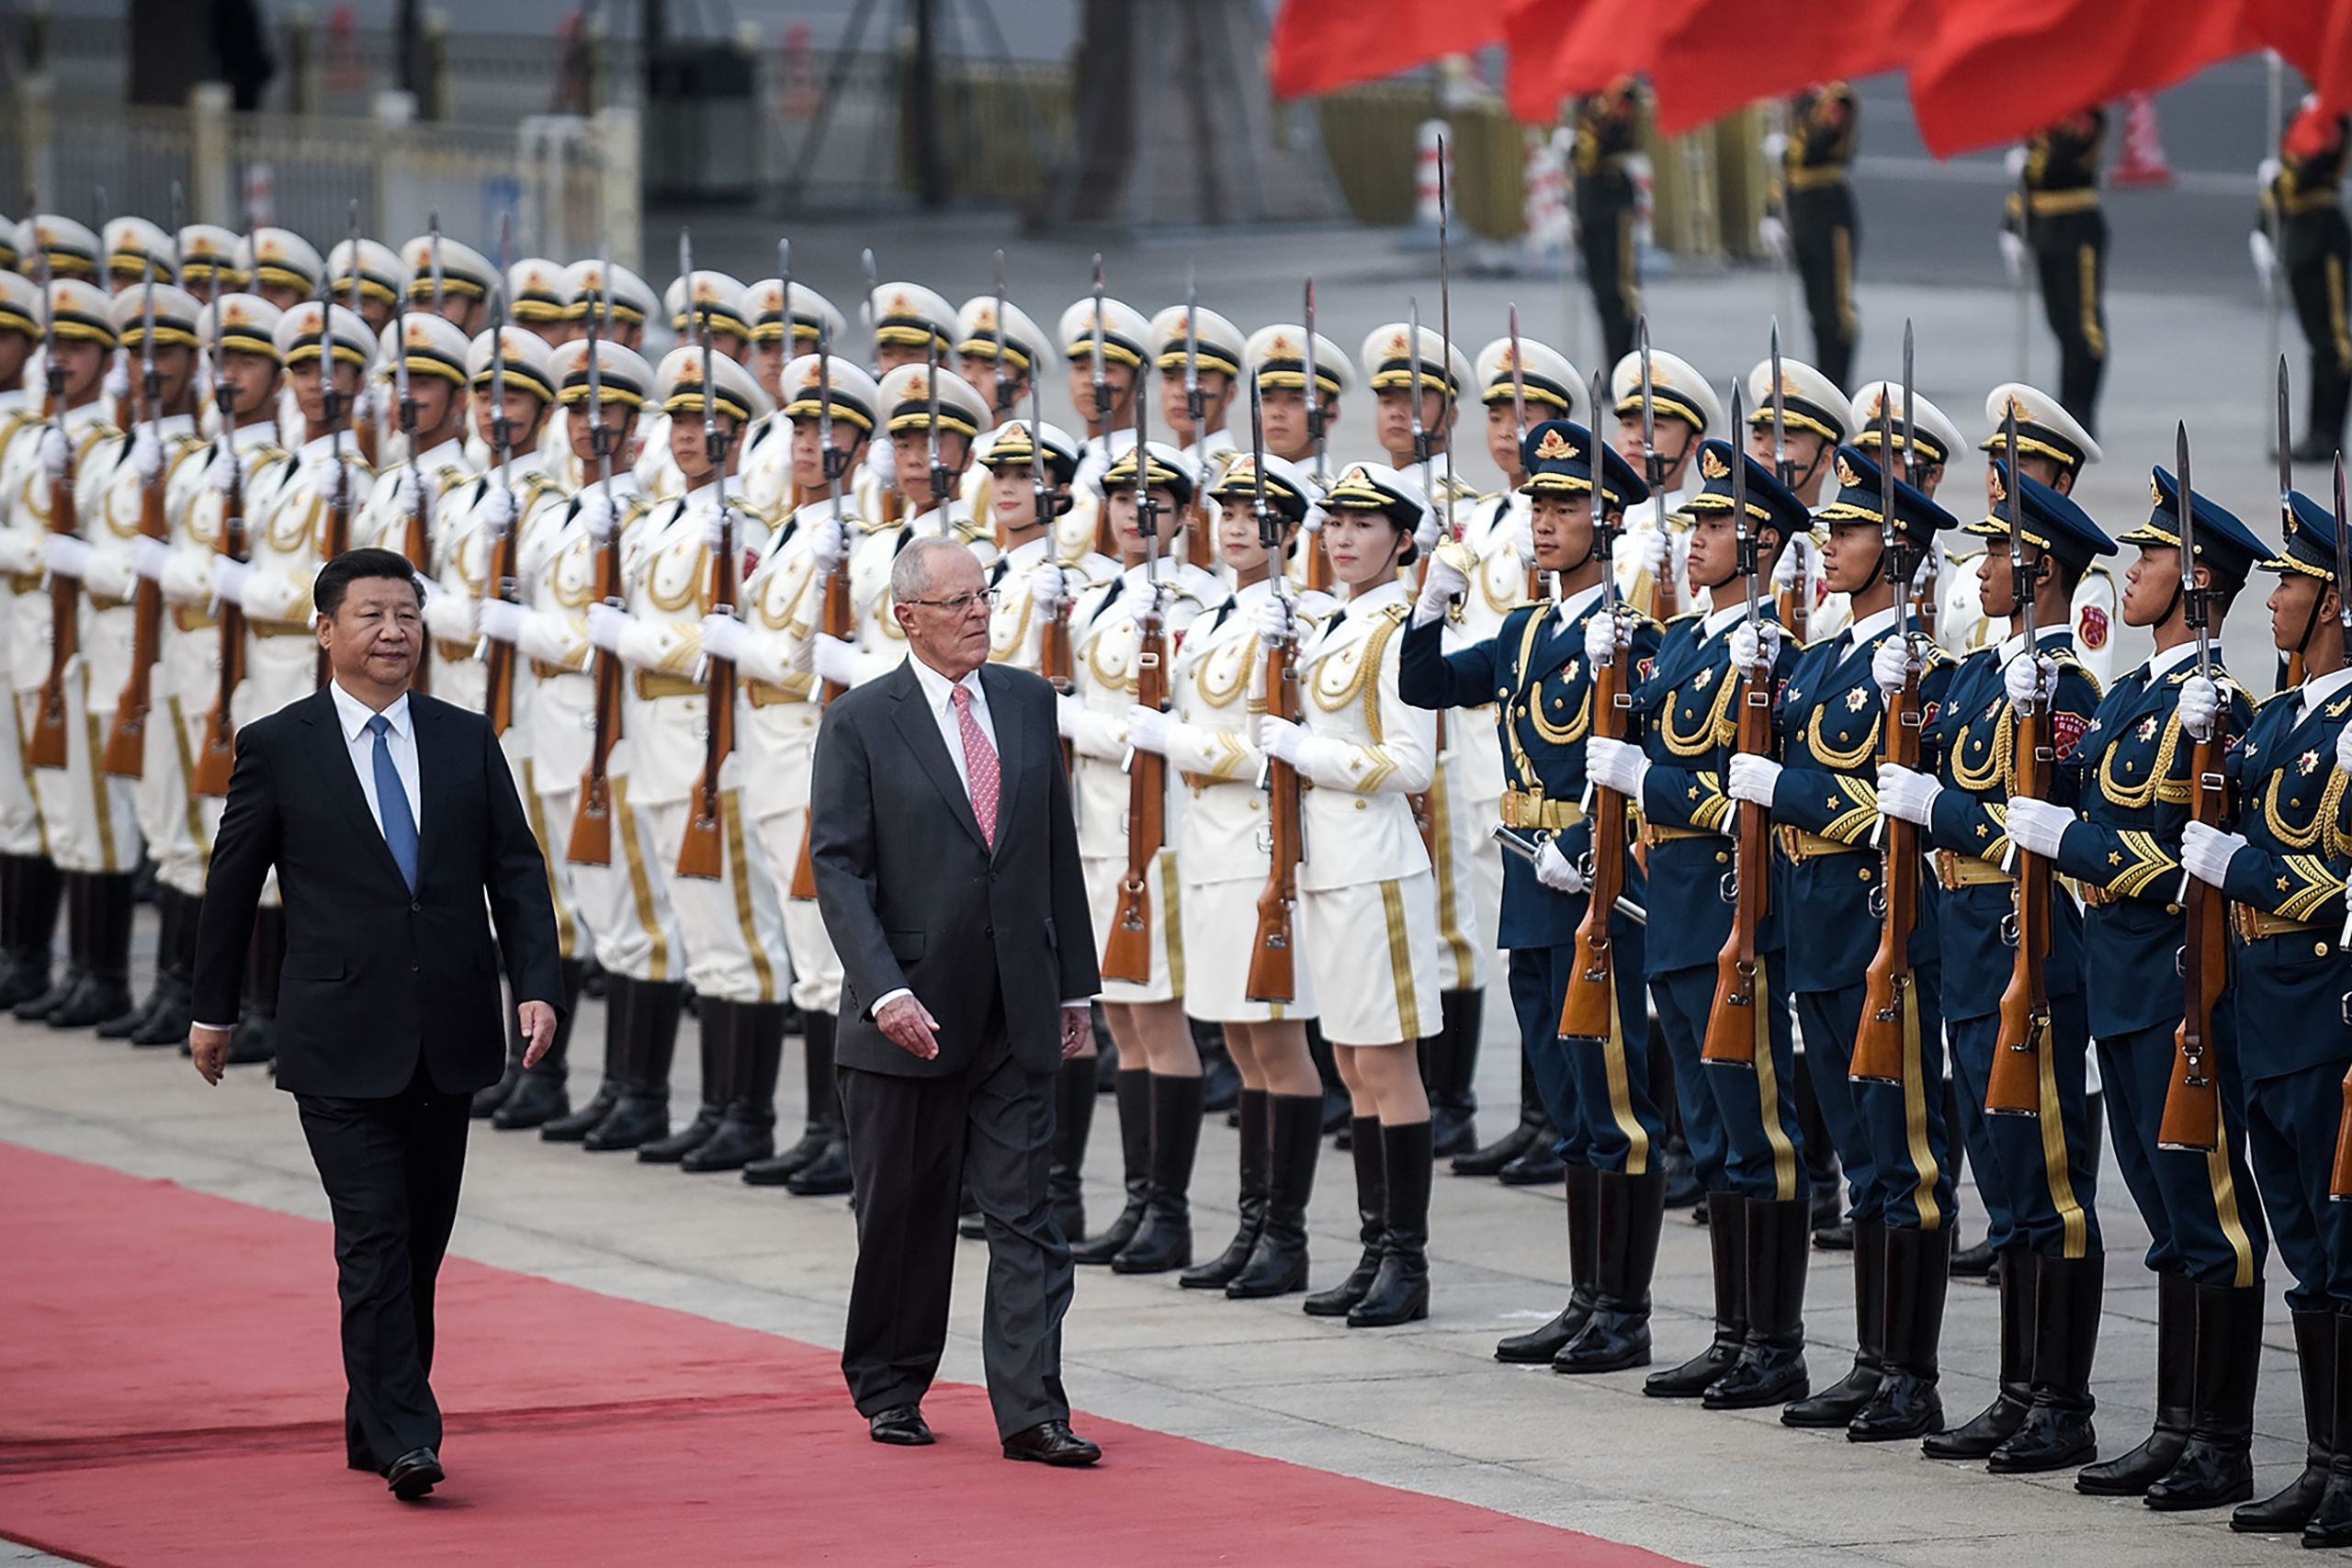 Peruvian President Pedro Pablo Kuczynski, right, joined Chinese President Xi Jinping for a welcoming ceremony in Beijing on Sept.13